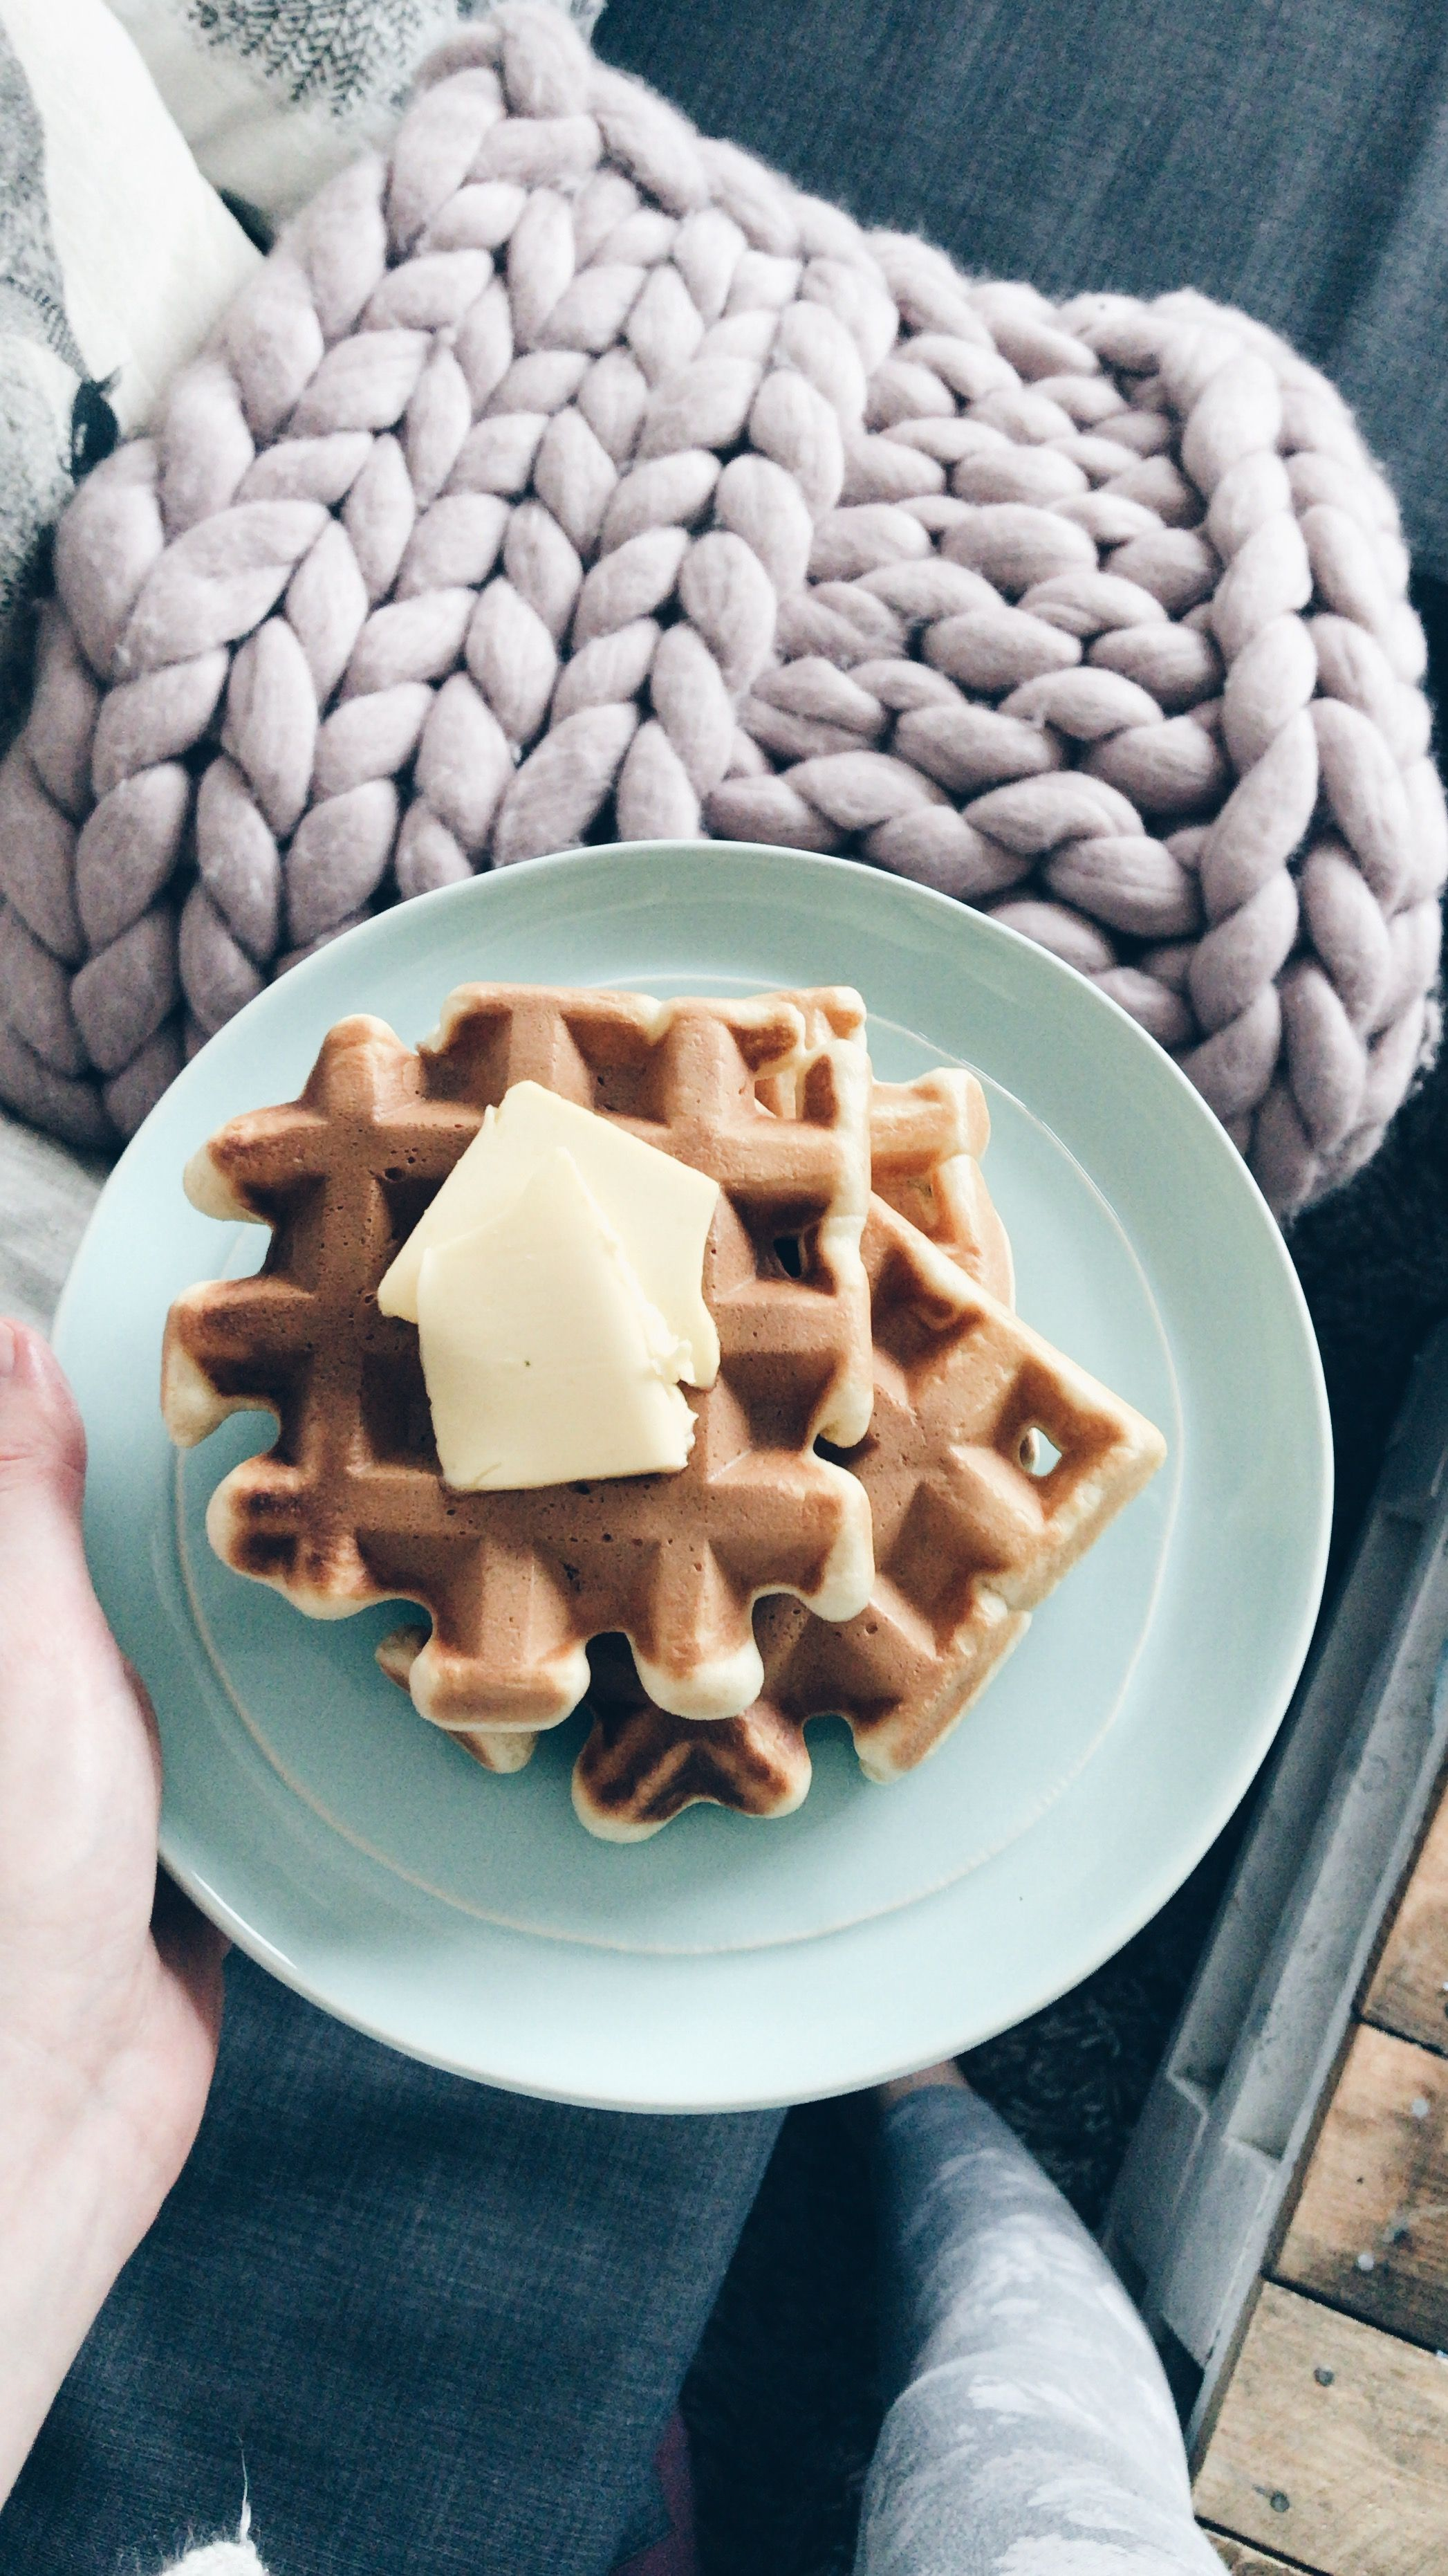 Pin by Kelly White on yum! Morning coffee, Food, Waffles